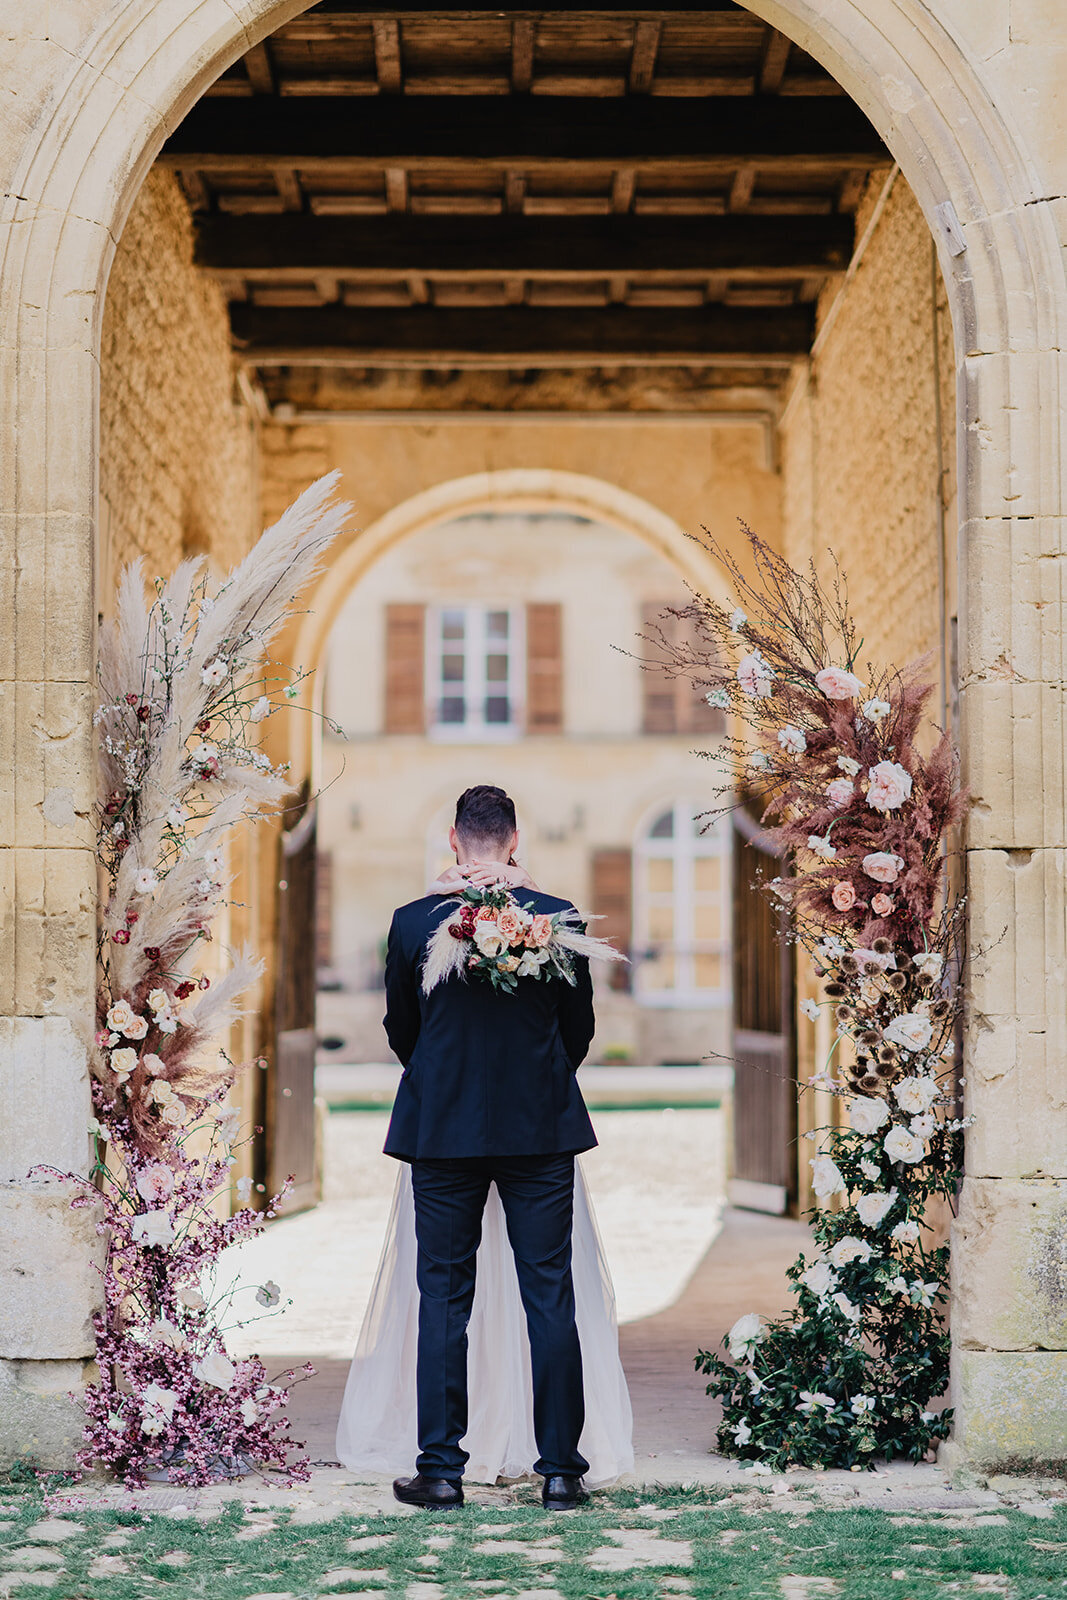 MorganeBallPhotography-Inspimariage-Chateau-ThonneLesPres-LovelyInstants-couple-3210_websize